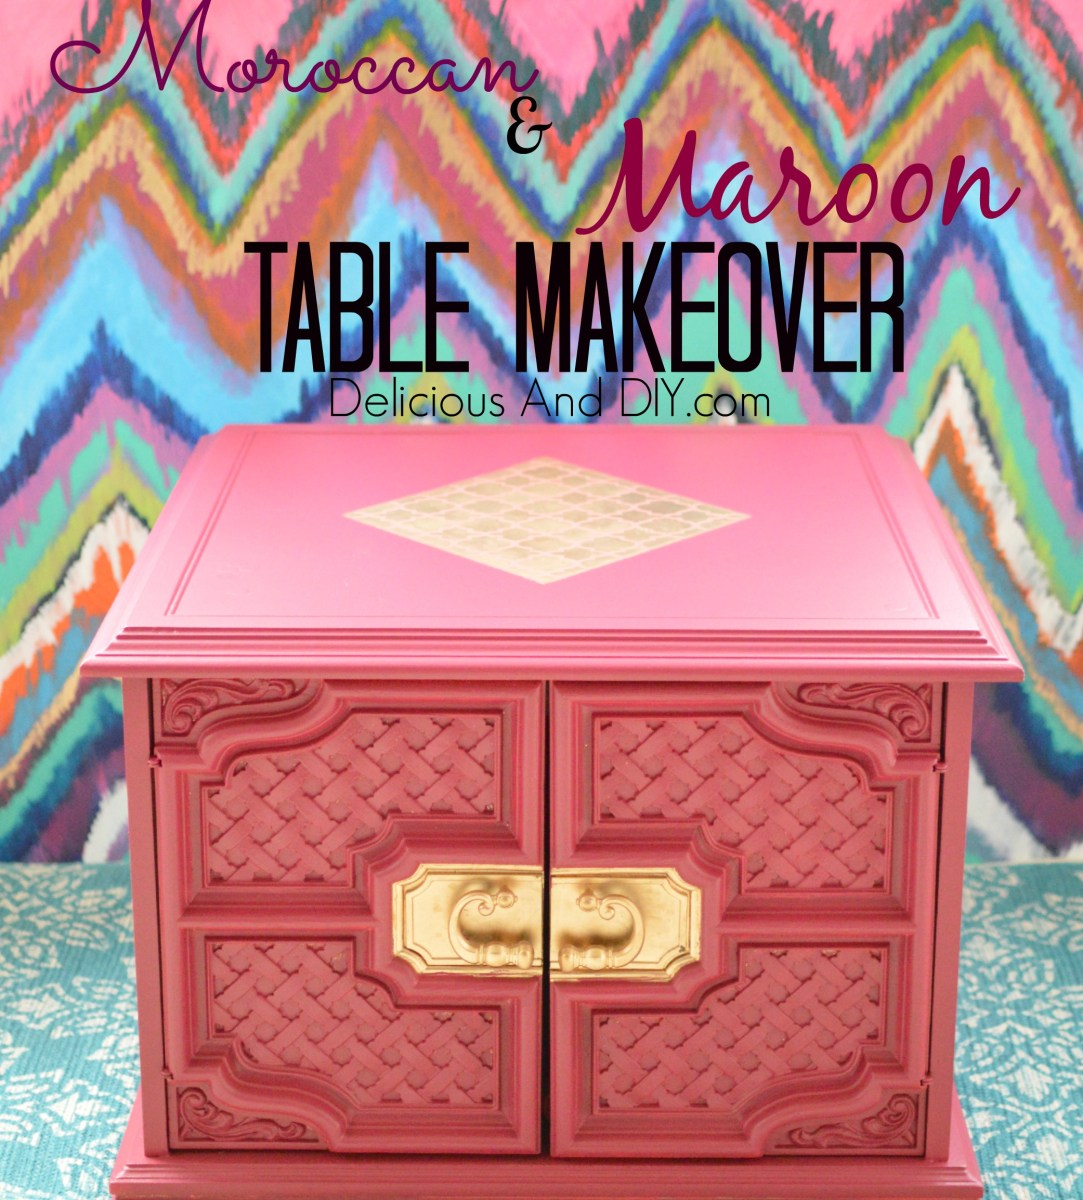 Moroccan And Maroon Table Makeover